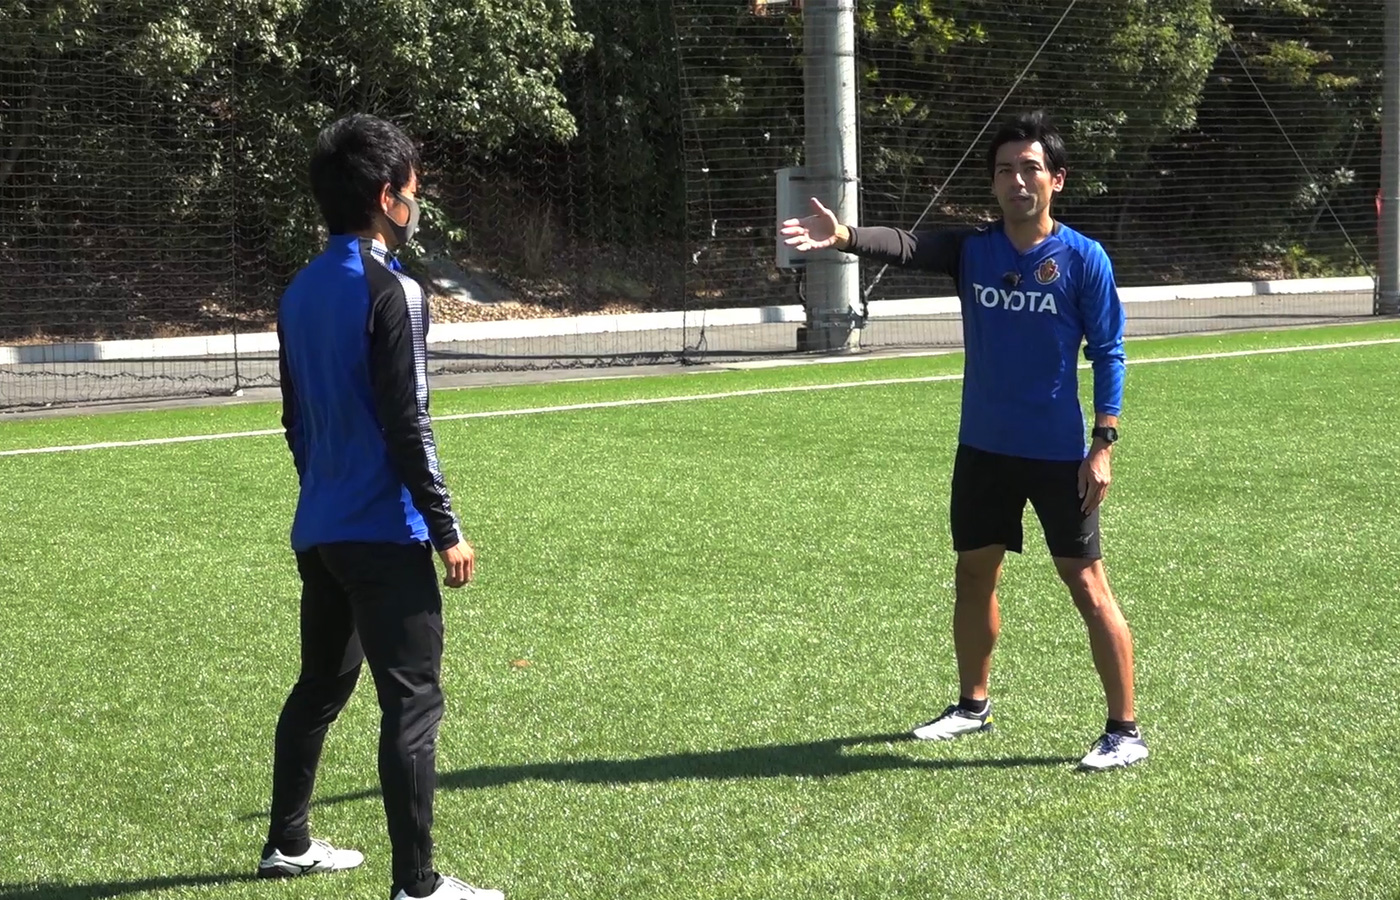 Learn football from world-class coaches - right at home